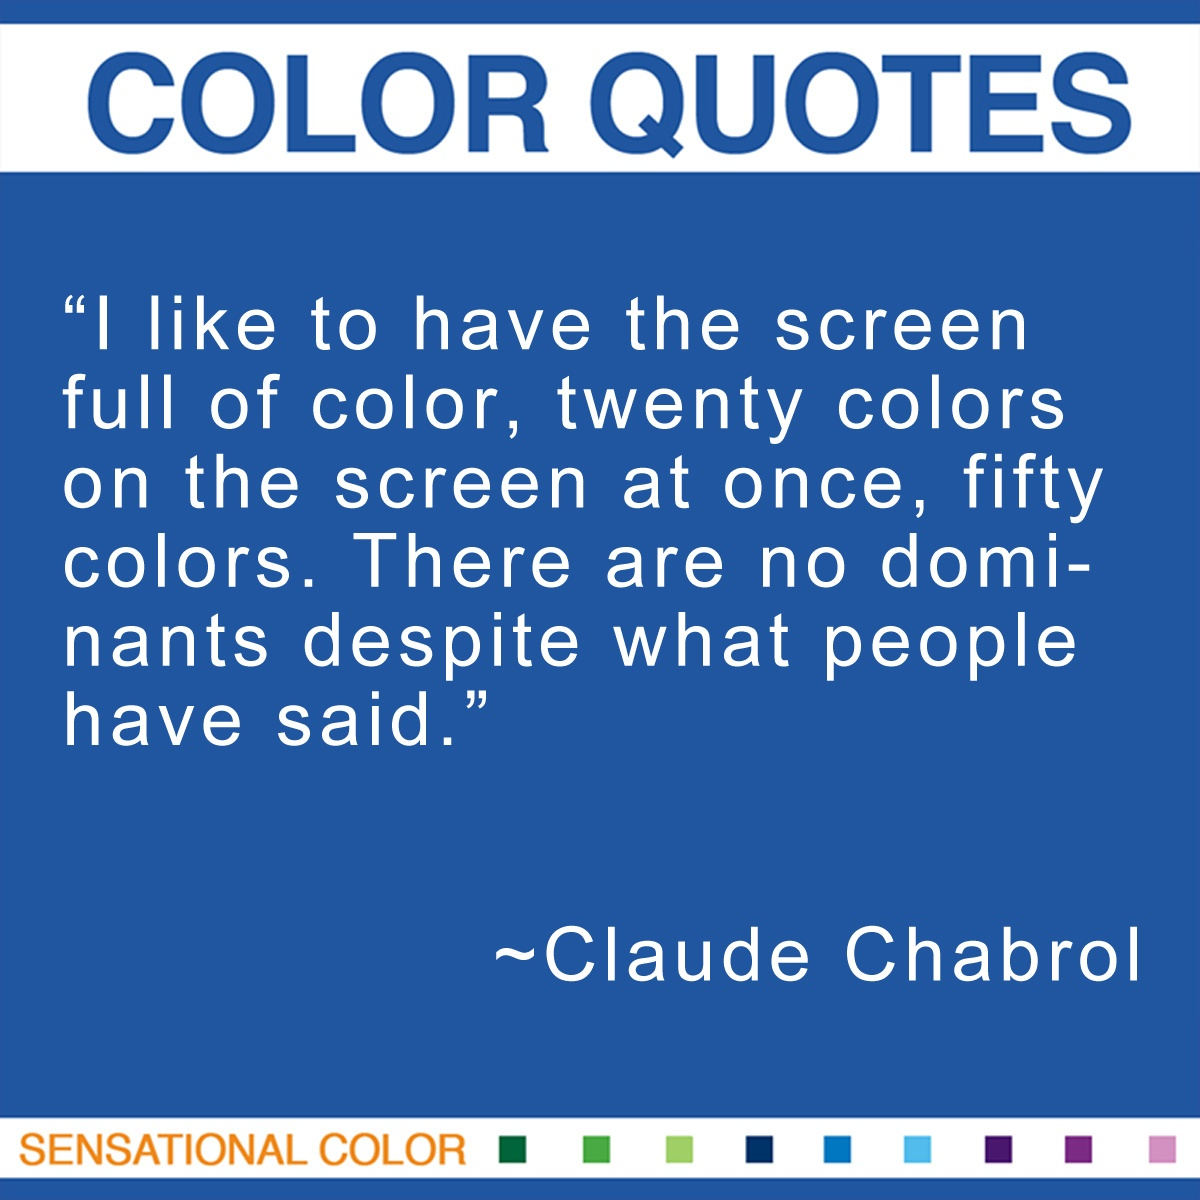 """I like to have the screen full of color, twenty colors on the screen at once, fifty colors. There are no dominants despite what people have said."" - Claude Chabrol"